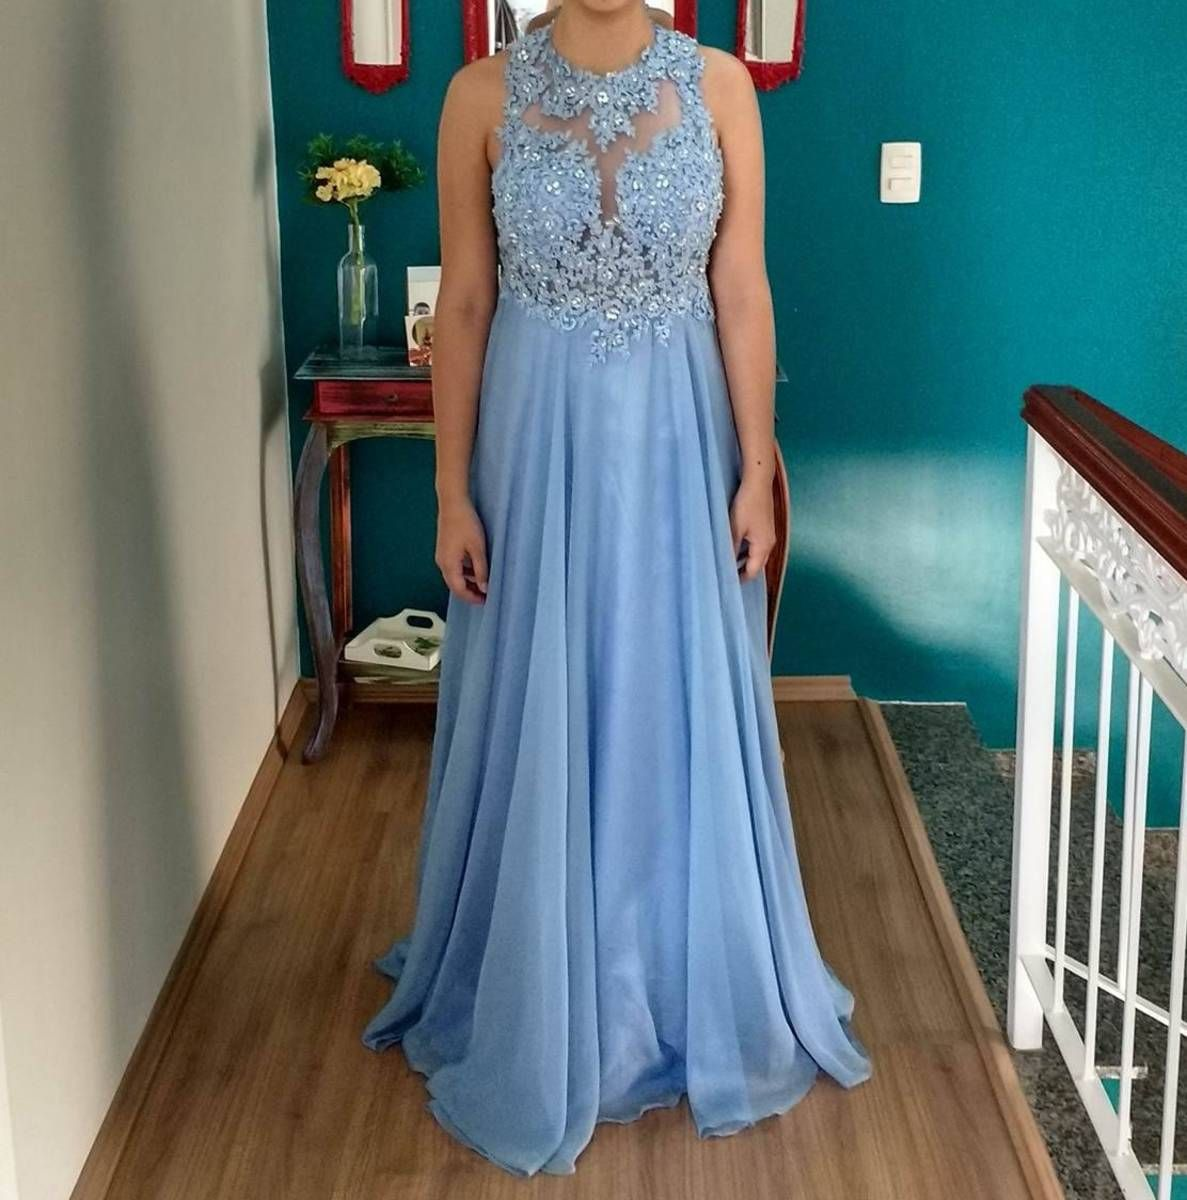 Blue Prom Dress with Illusion Lace Bodice | Evening & Prom Dresses ...